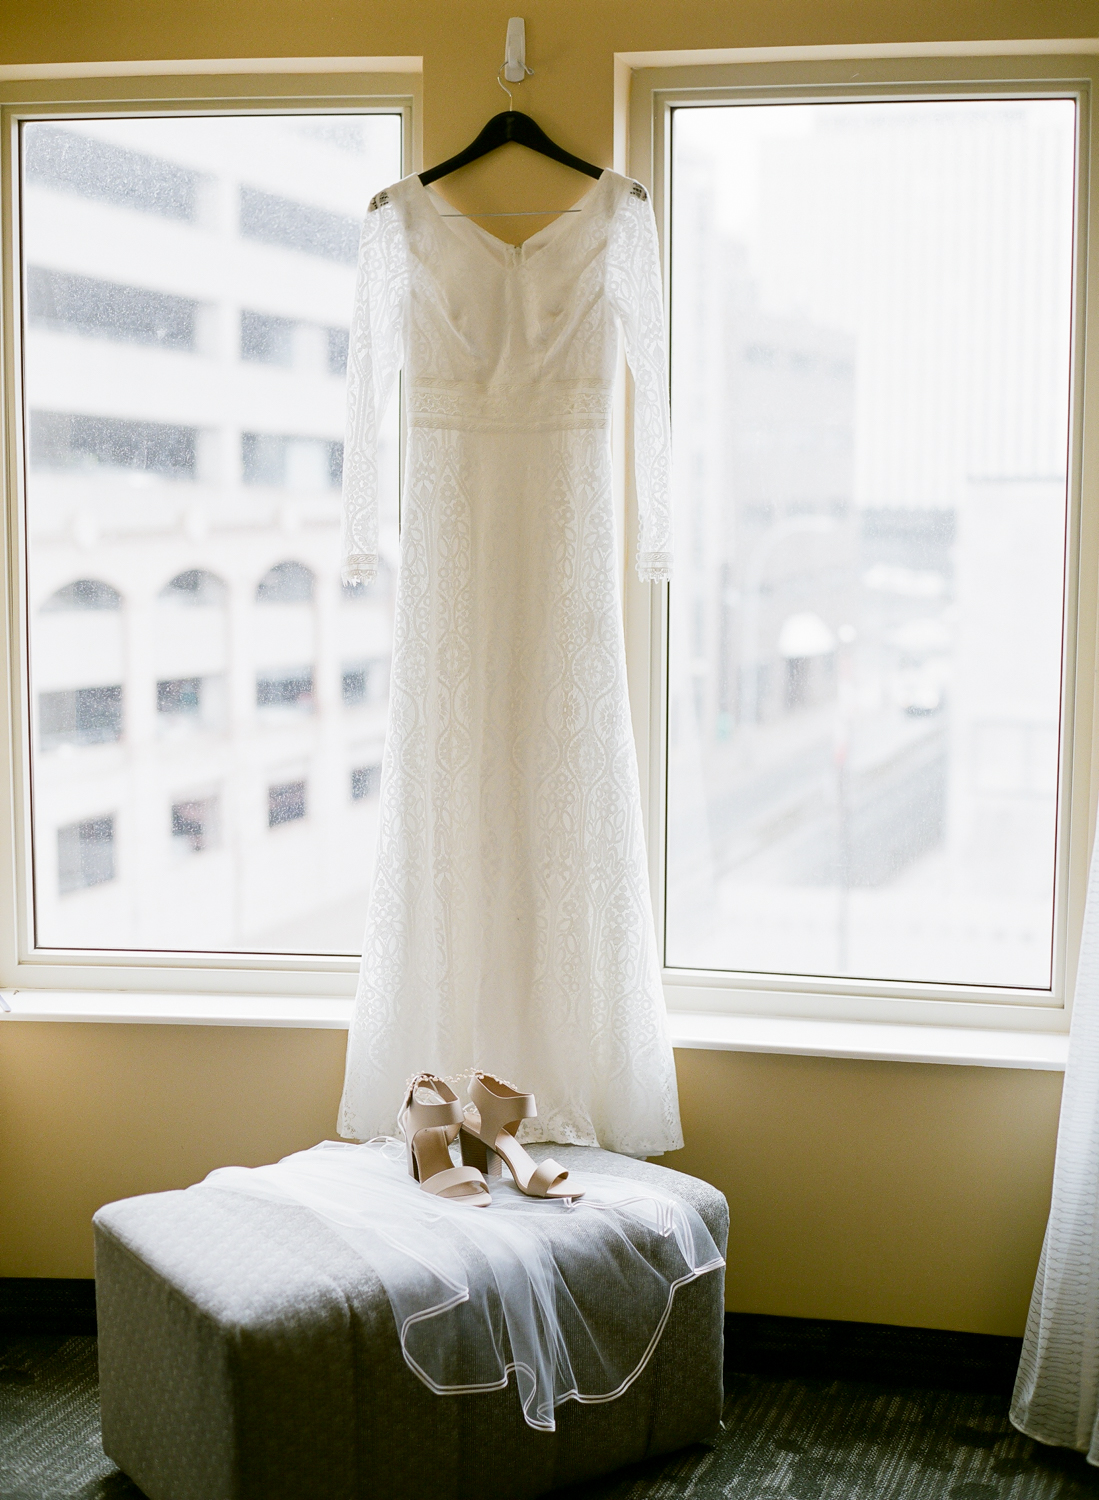 Jacqueline Anne Photography - Jessica and Aaron in Halifax-97.jpg